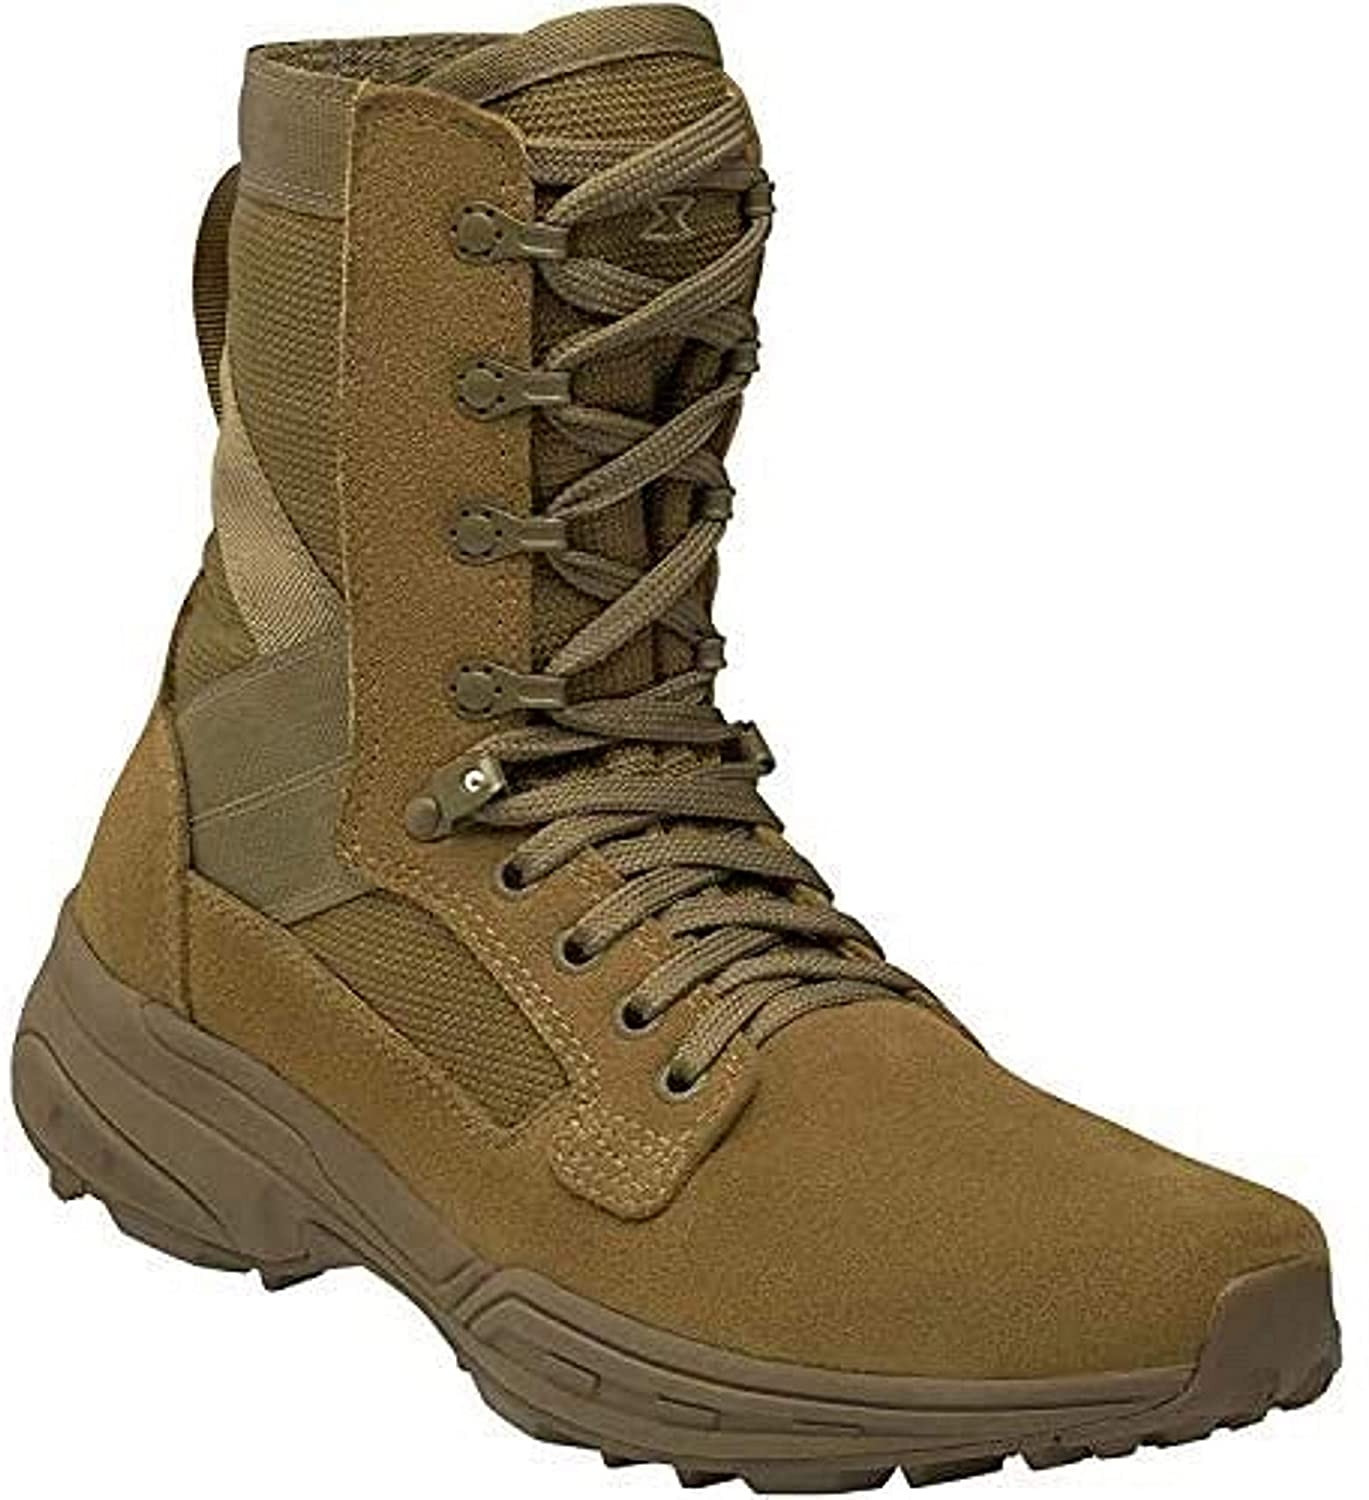 Garmont T8 tactical boots